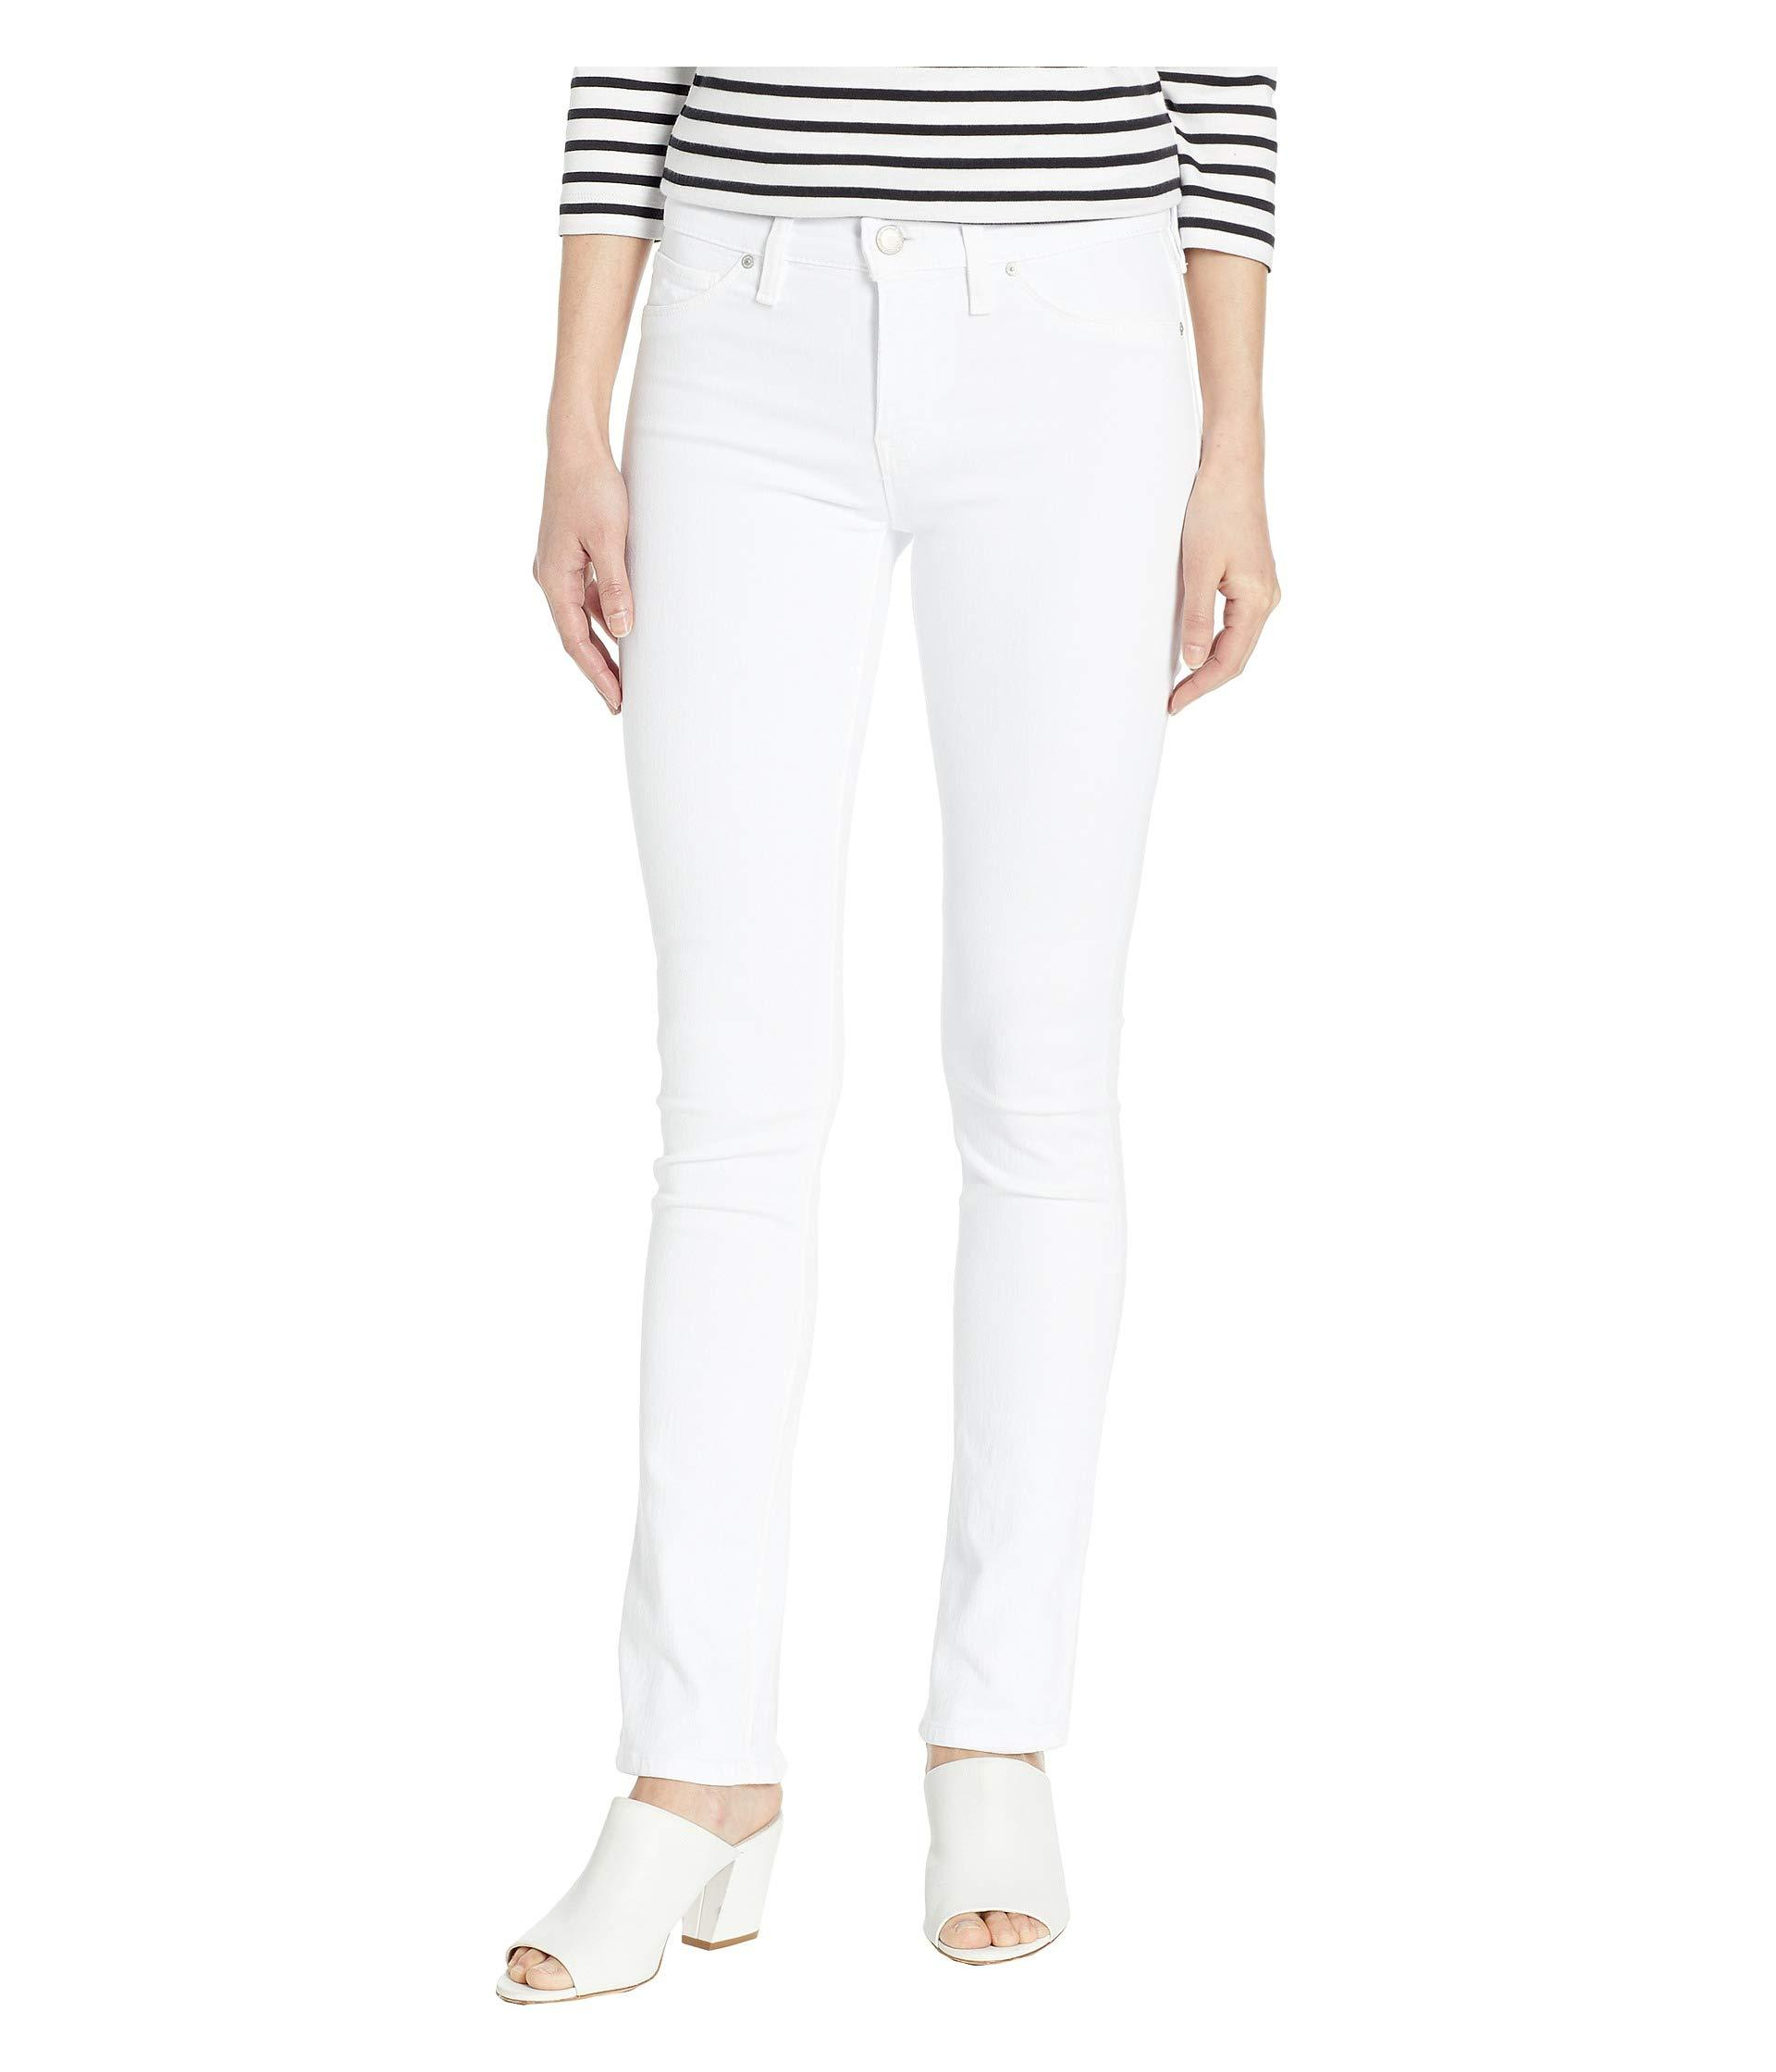 68af88ad3e74 Lyst - Hudson Jeans Nico Ankle With Back Open Lace Detail In White ...